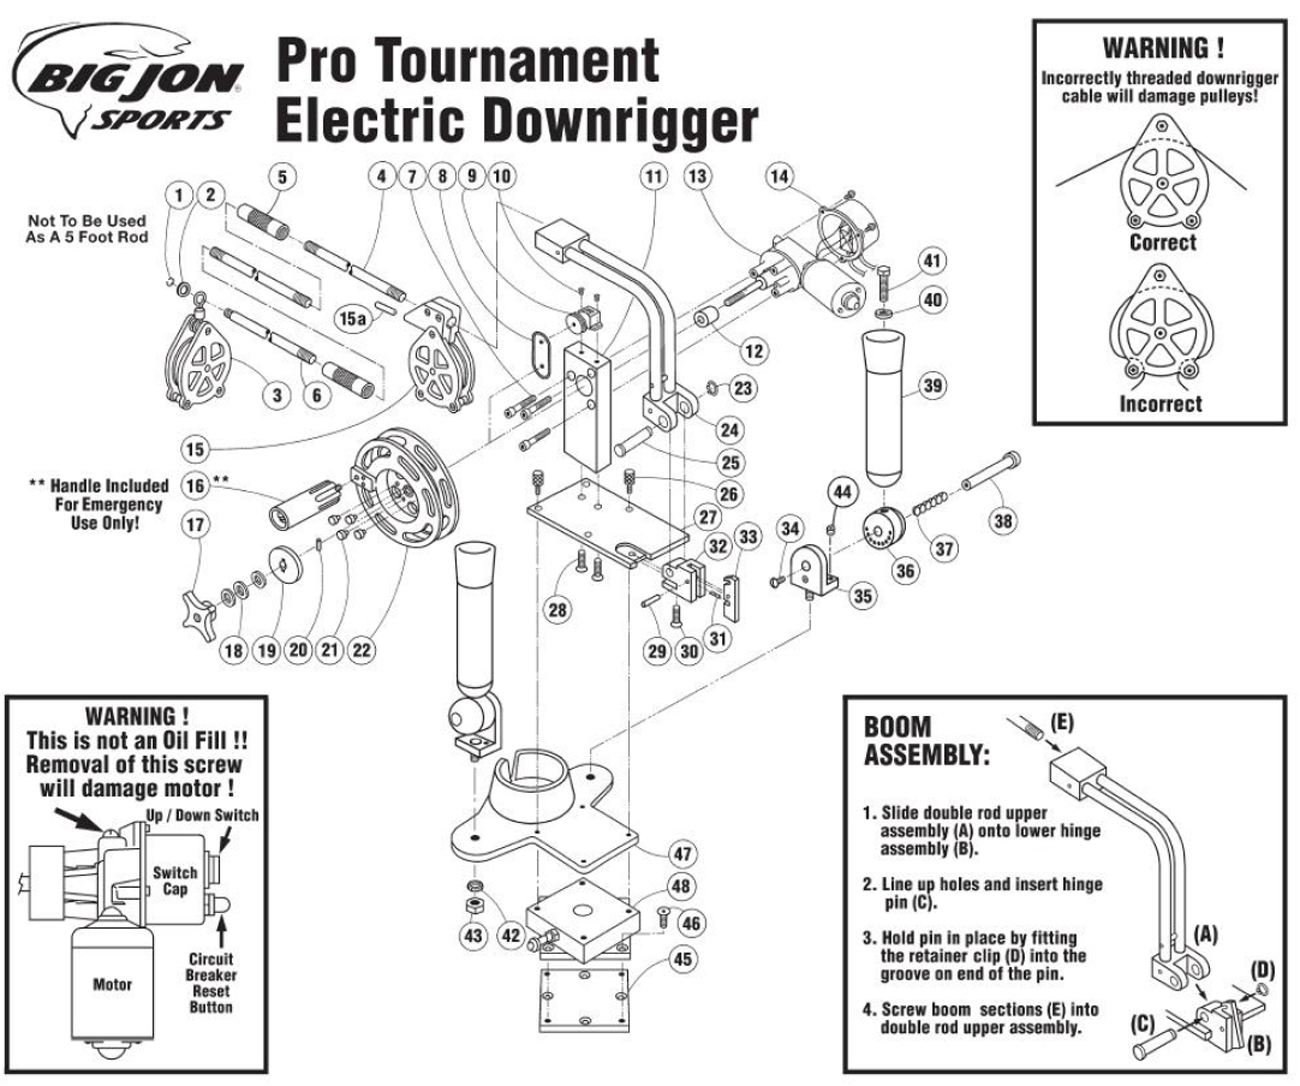 Big_Jon_Pro_Tournament big jon replacement parts pro tournament electric downrigger scotty downrigger wiring diagram at metegol.co